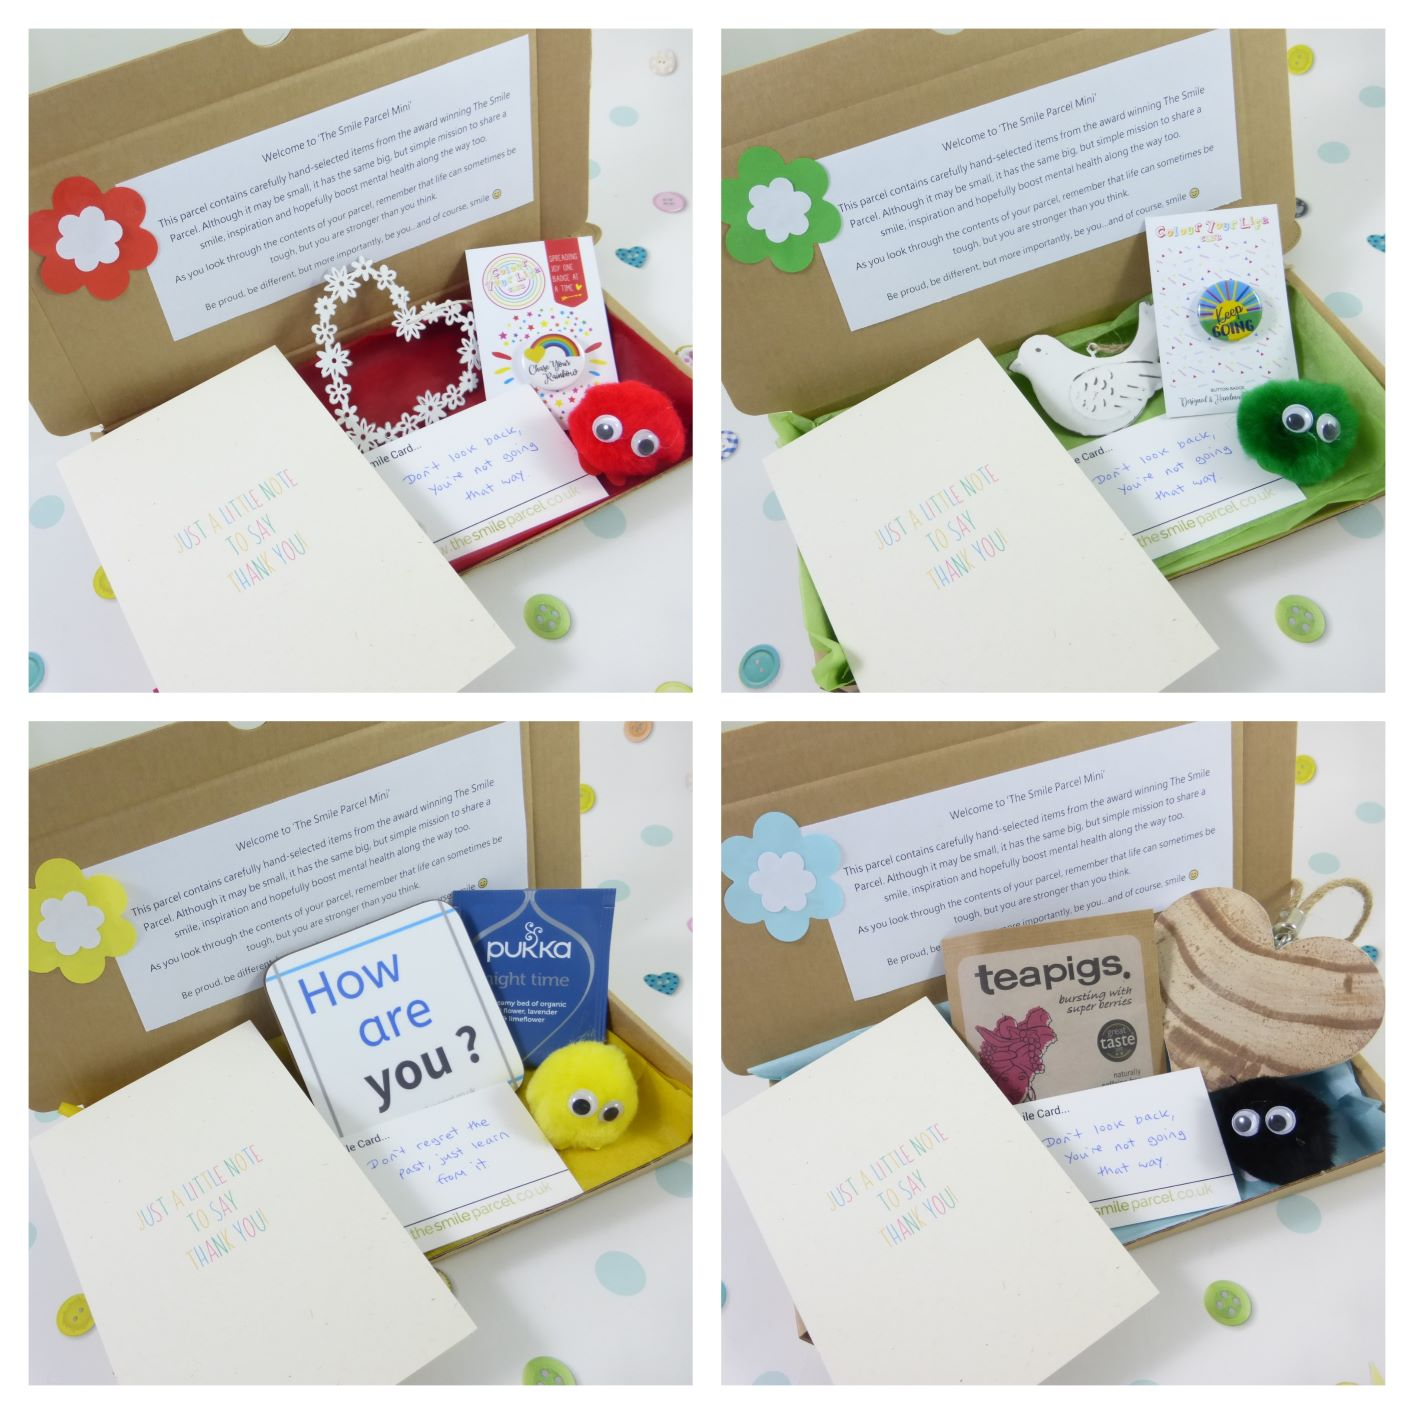 Thank You Gift, Letterbox Friendly, Pick Me Up Gift, The Smile Parcel Mini, Self Care Box, Mental Health Gift Kind Shop 3